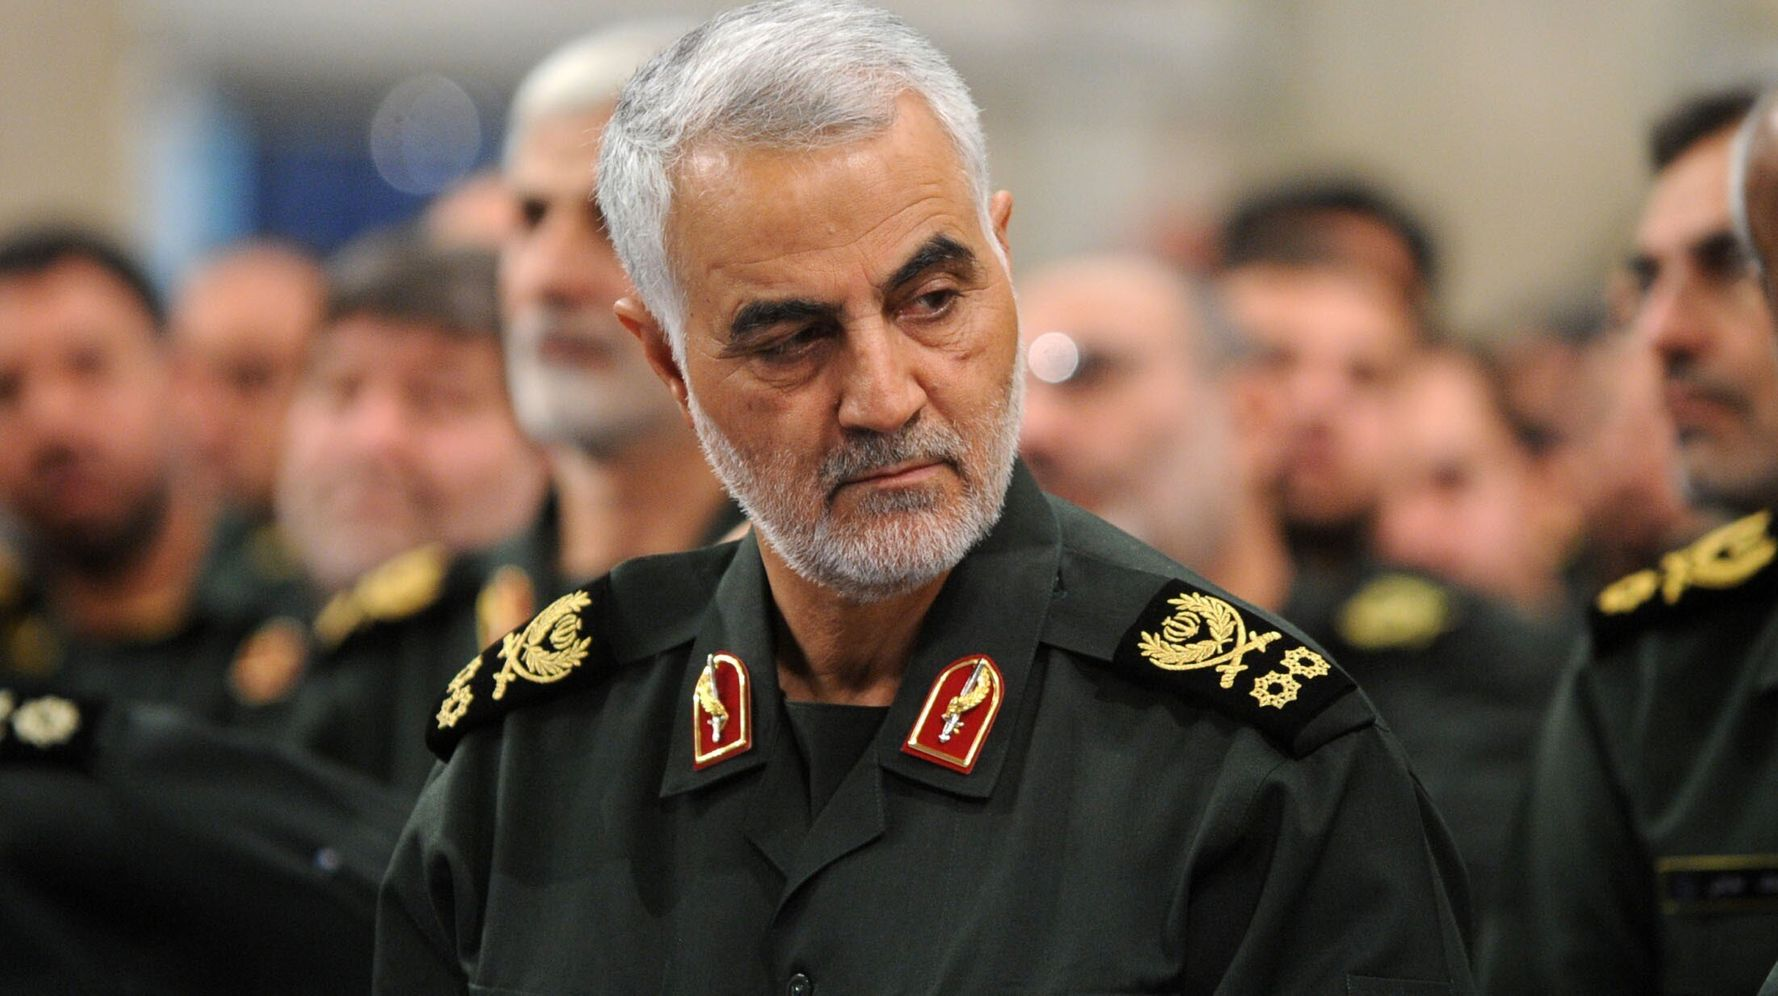 Why The U.S. Considered Soleimani 'Untouchable' For Years Before His Assassination